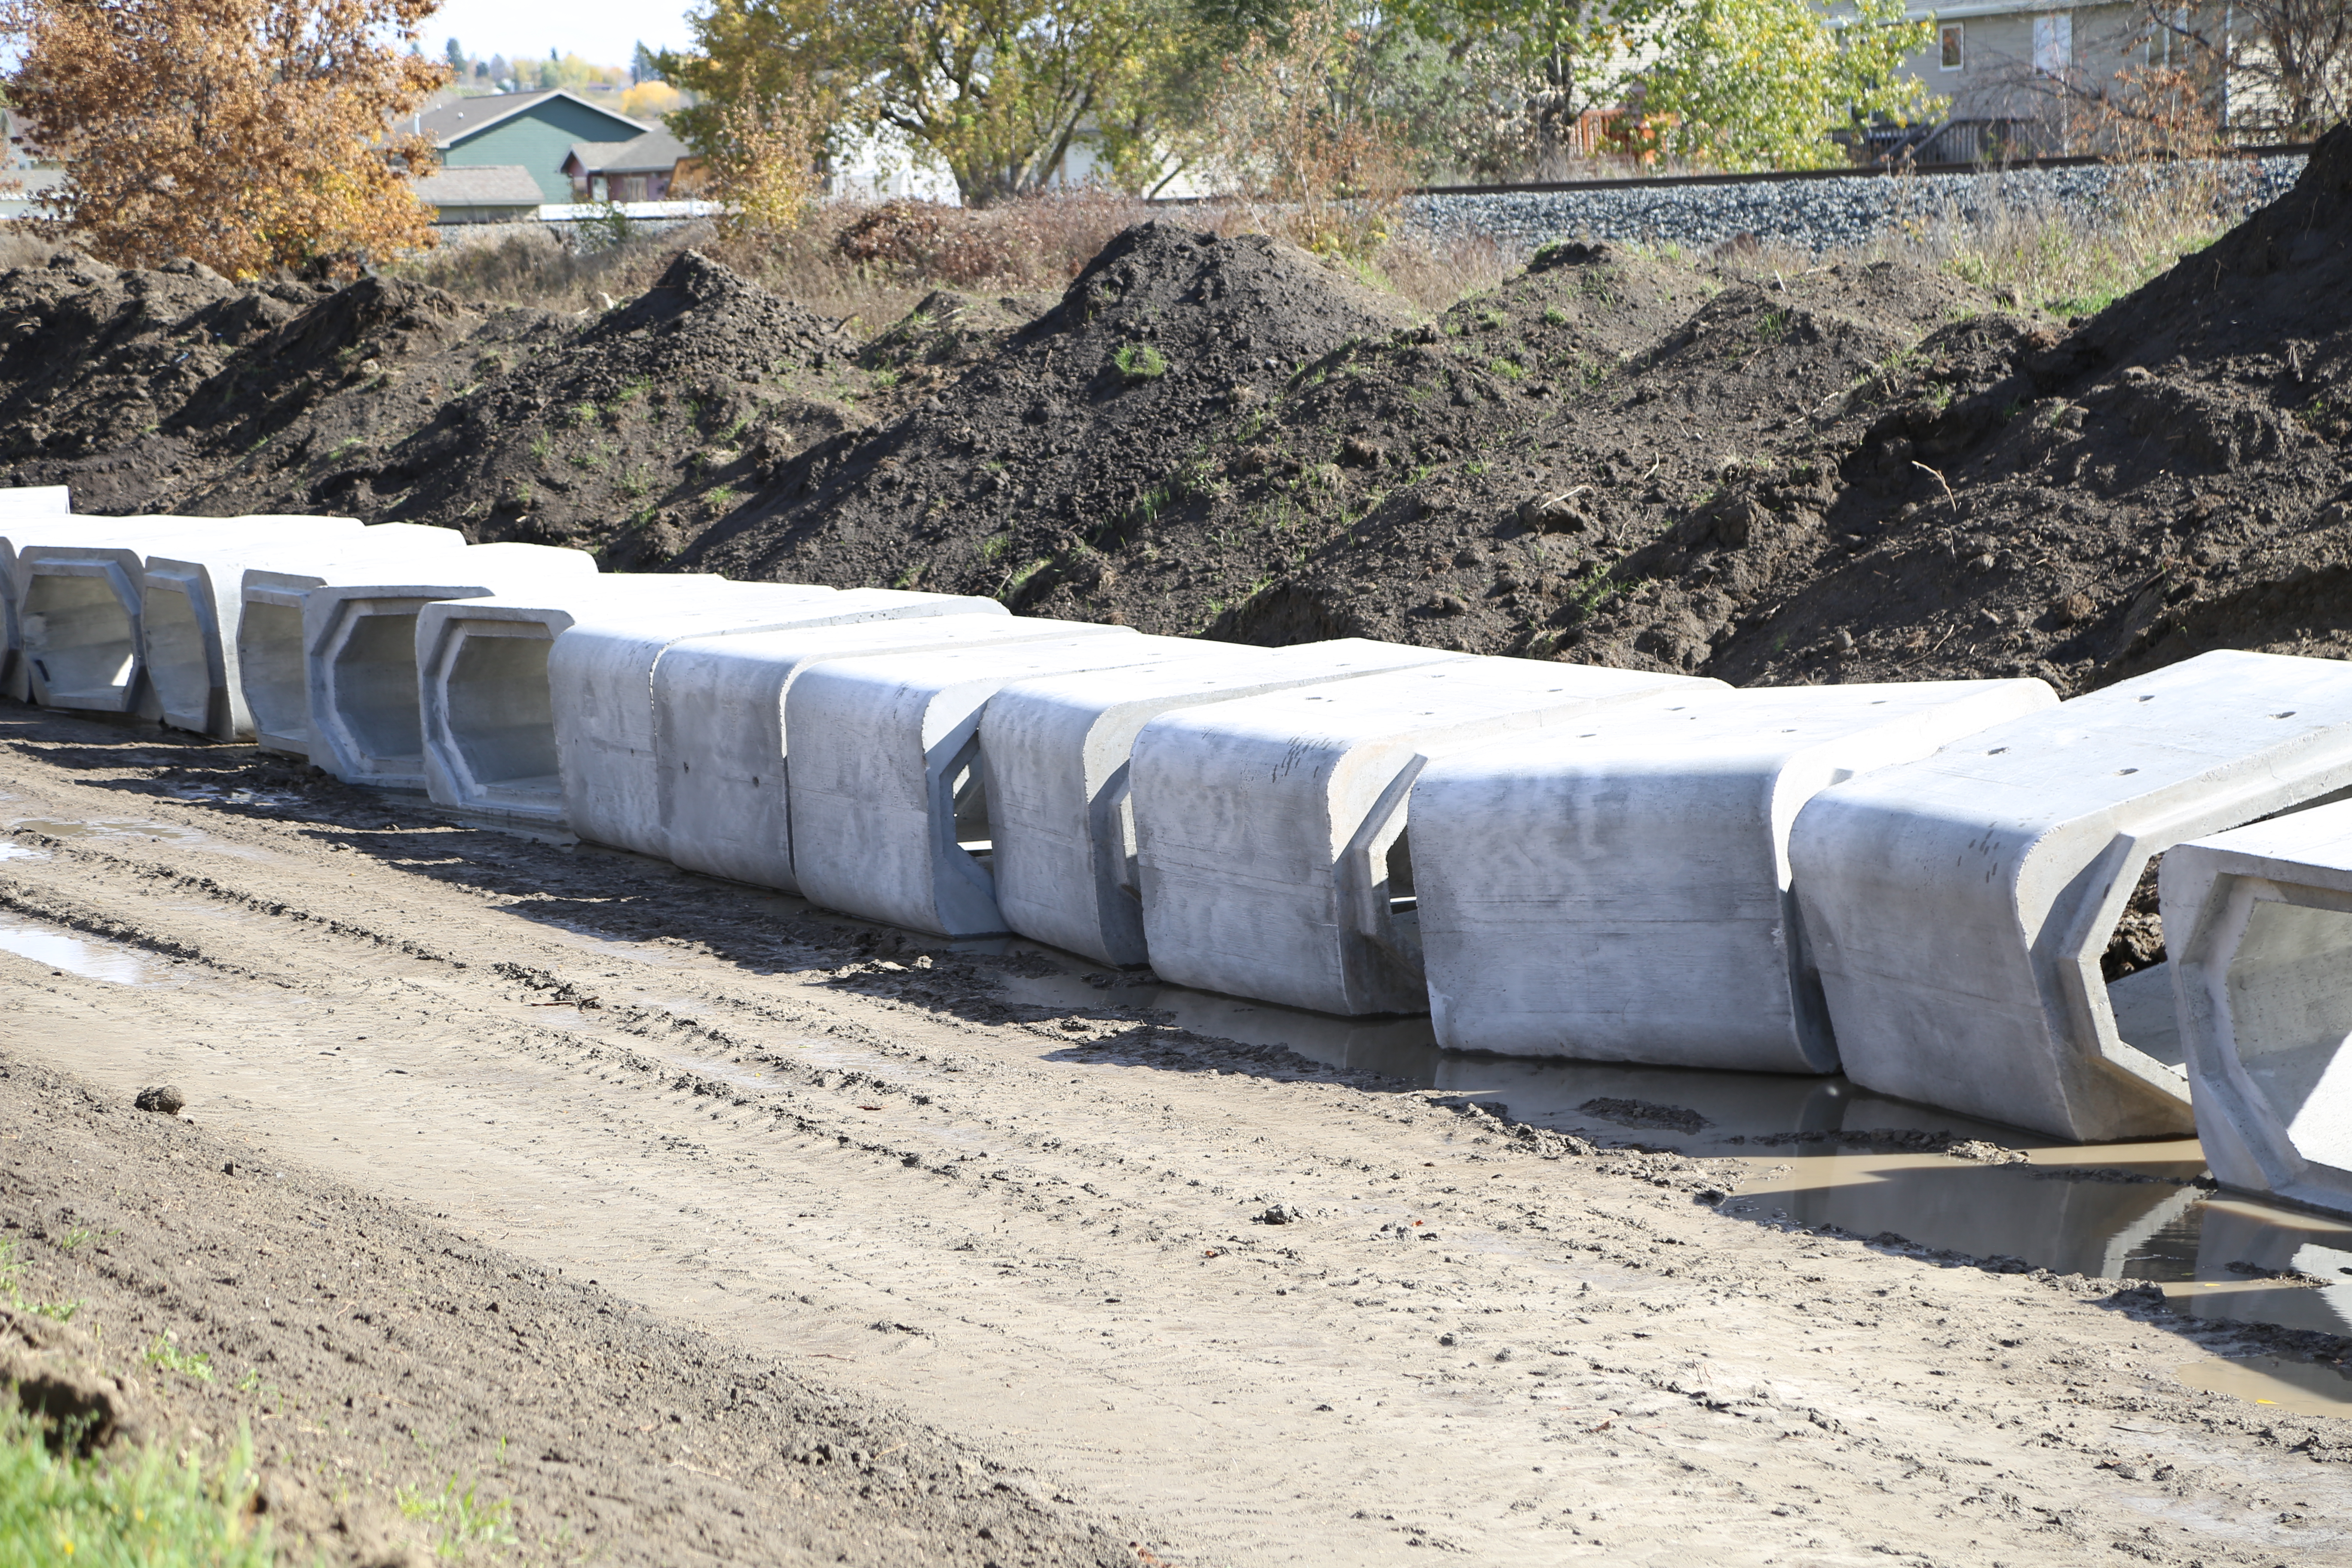 STORM SEWER INFRASTRUCTURE